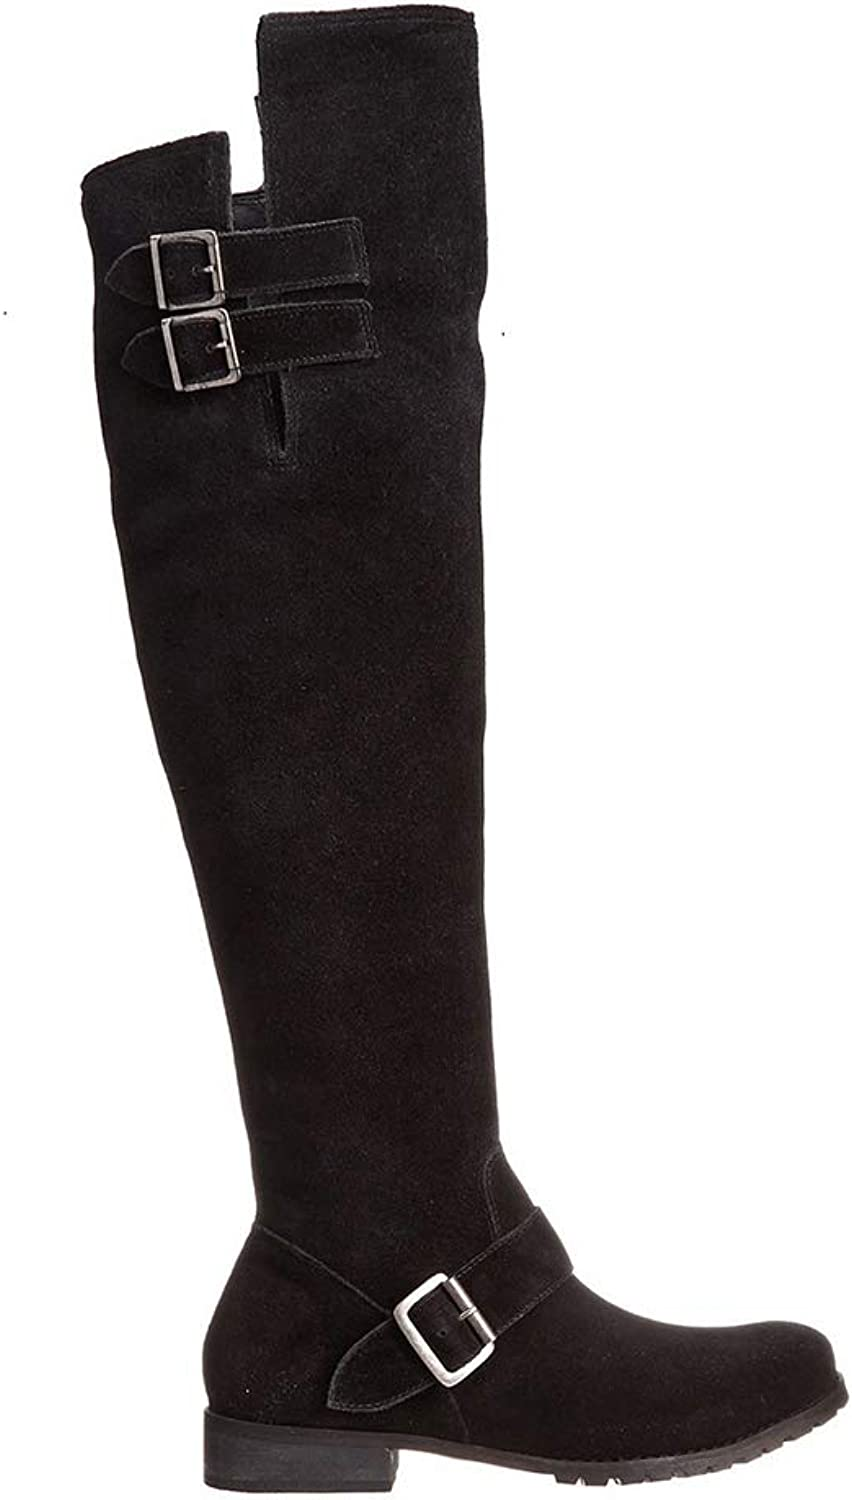 Long Tube Rider Boots, Low Heel Suede 'High' and Knee Boots